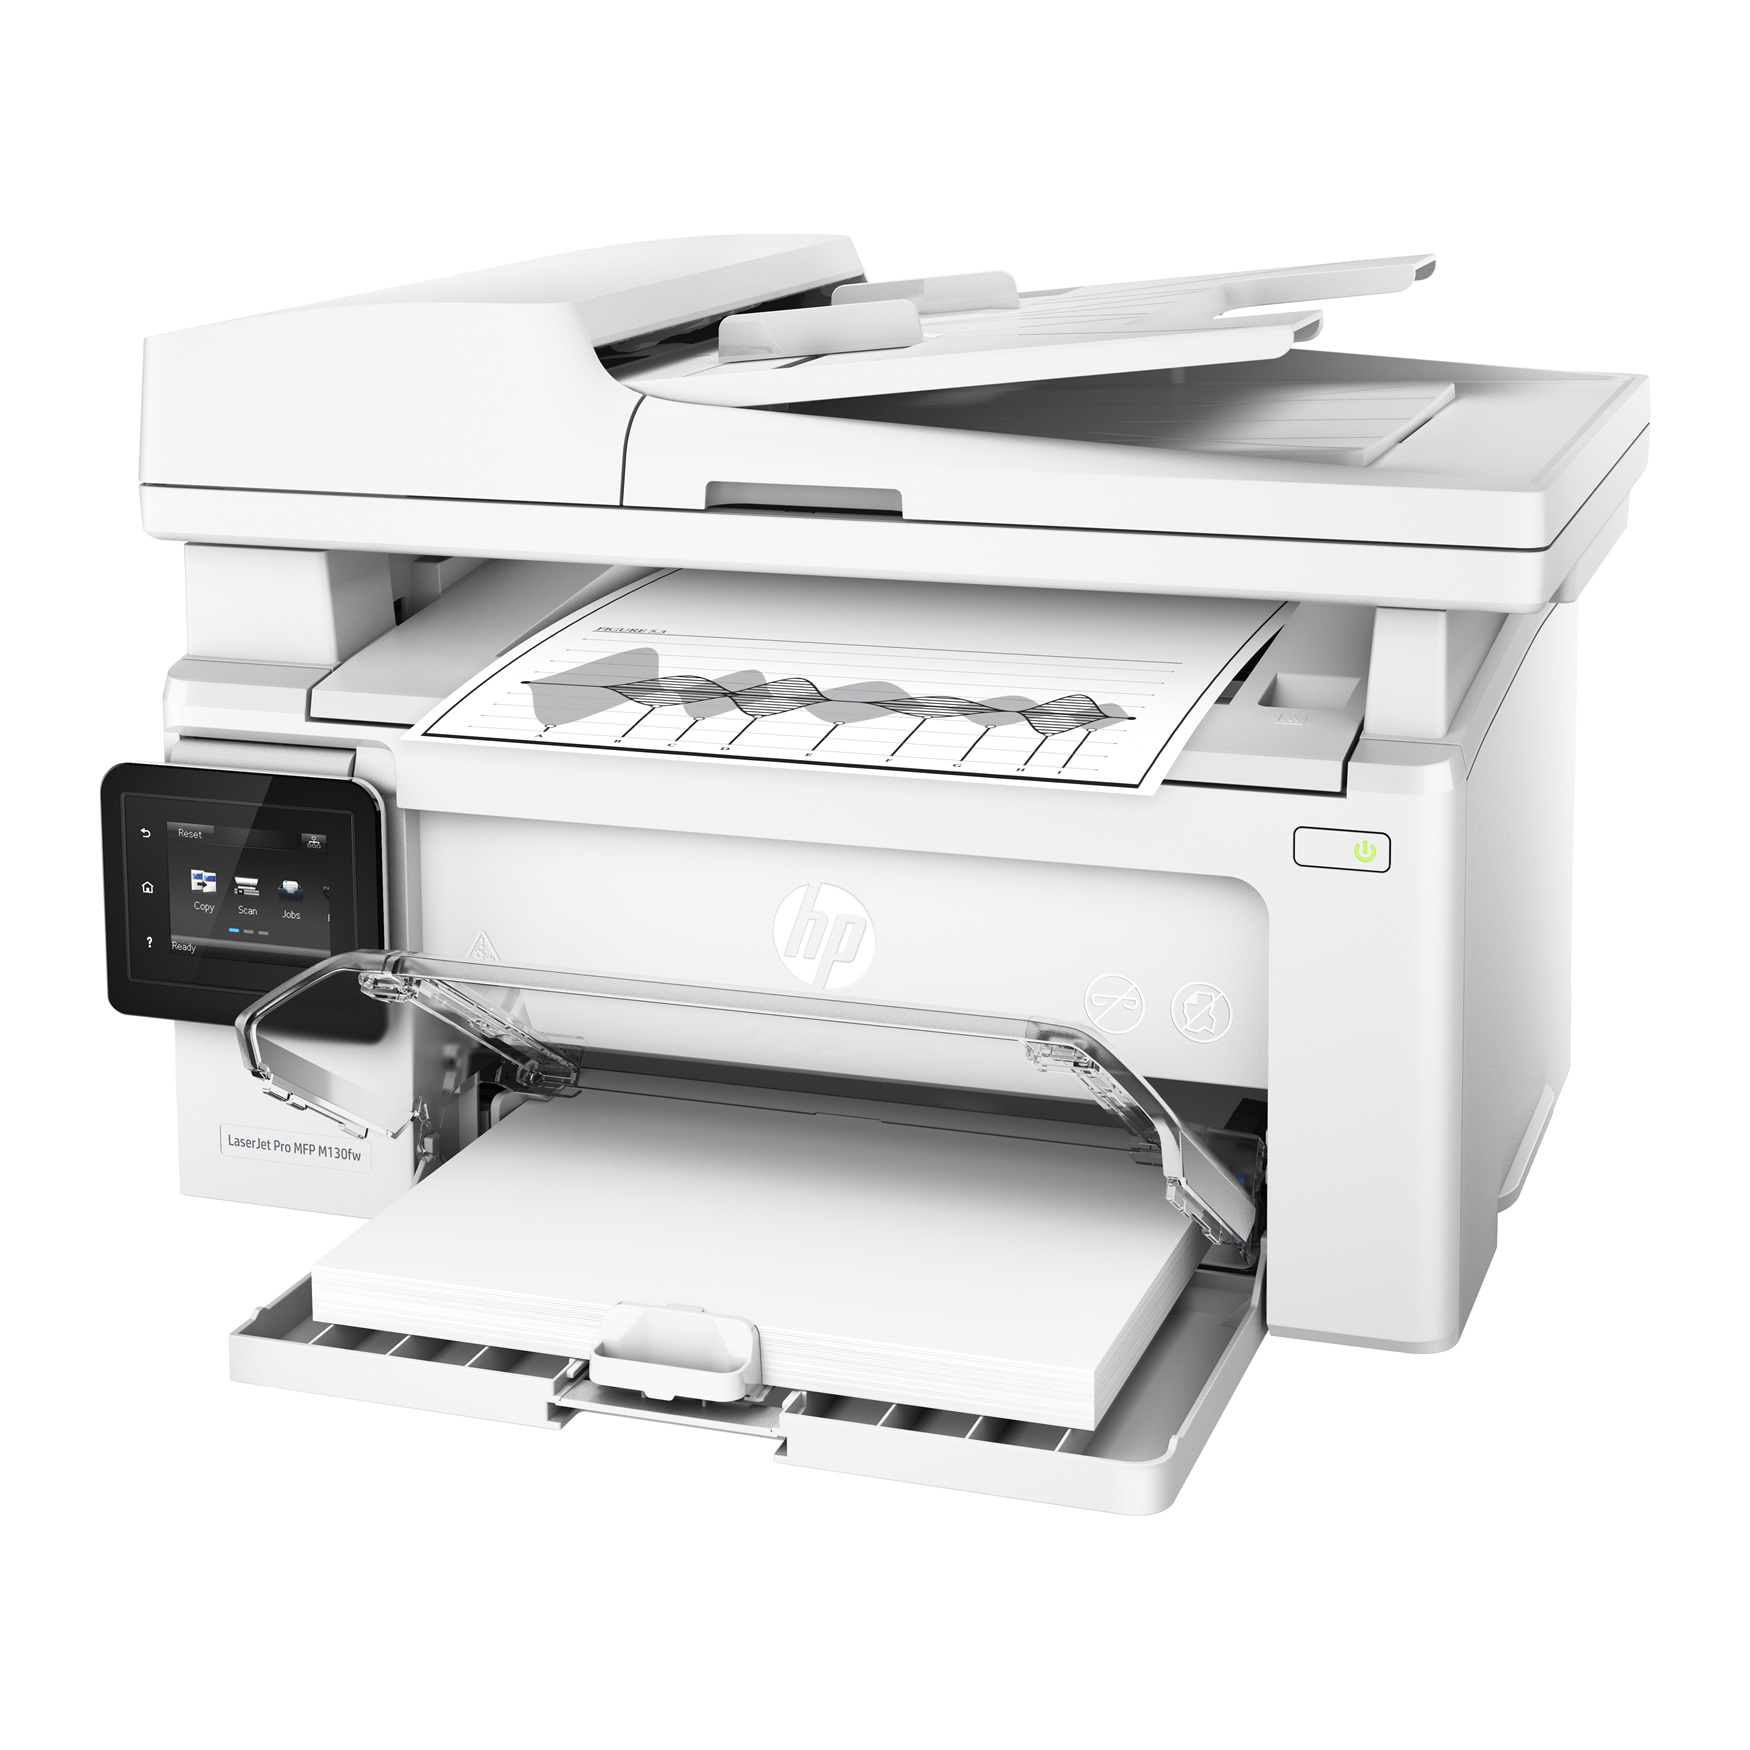 HP Laserjet Pro M130fw A4 Multifunction Printer